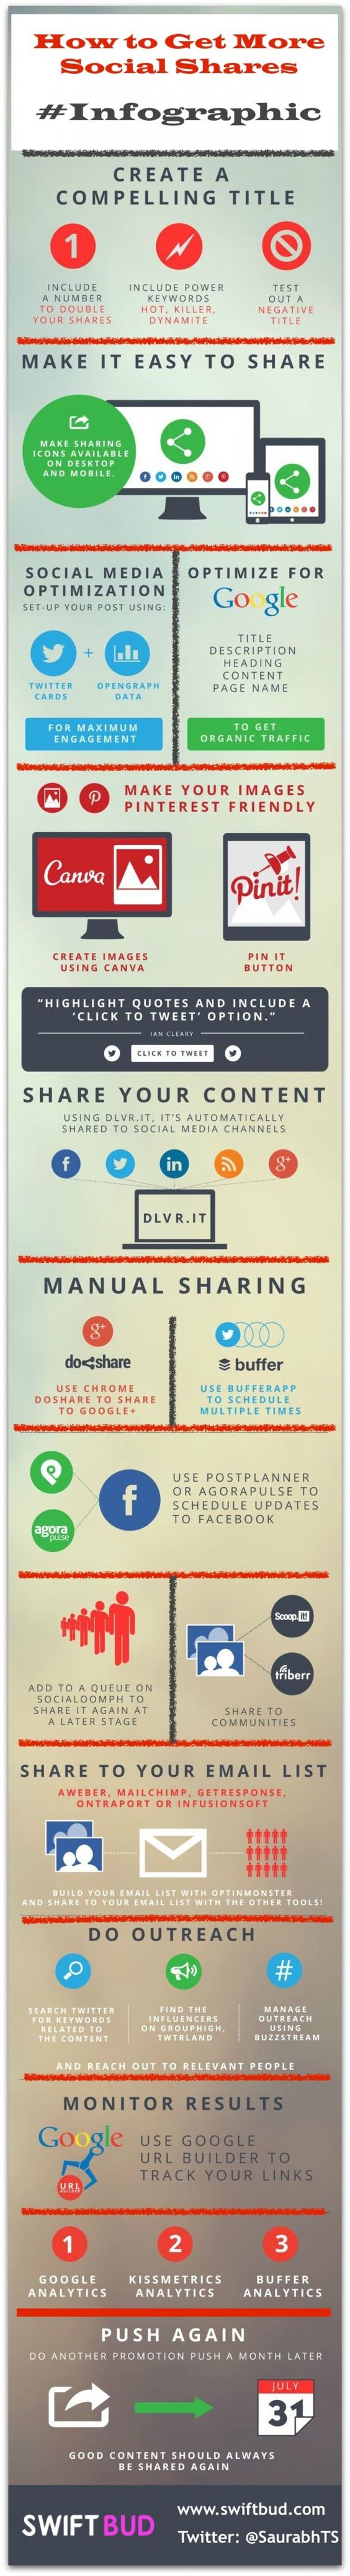 How to Get More Social Shares – 6 Quick Tweaks & An #Infographic!